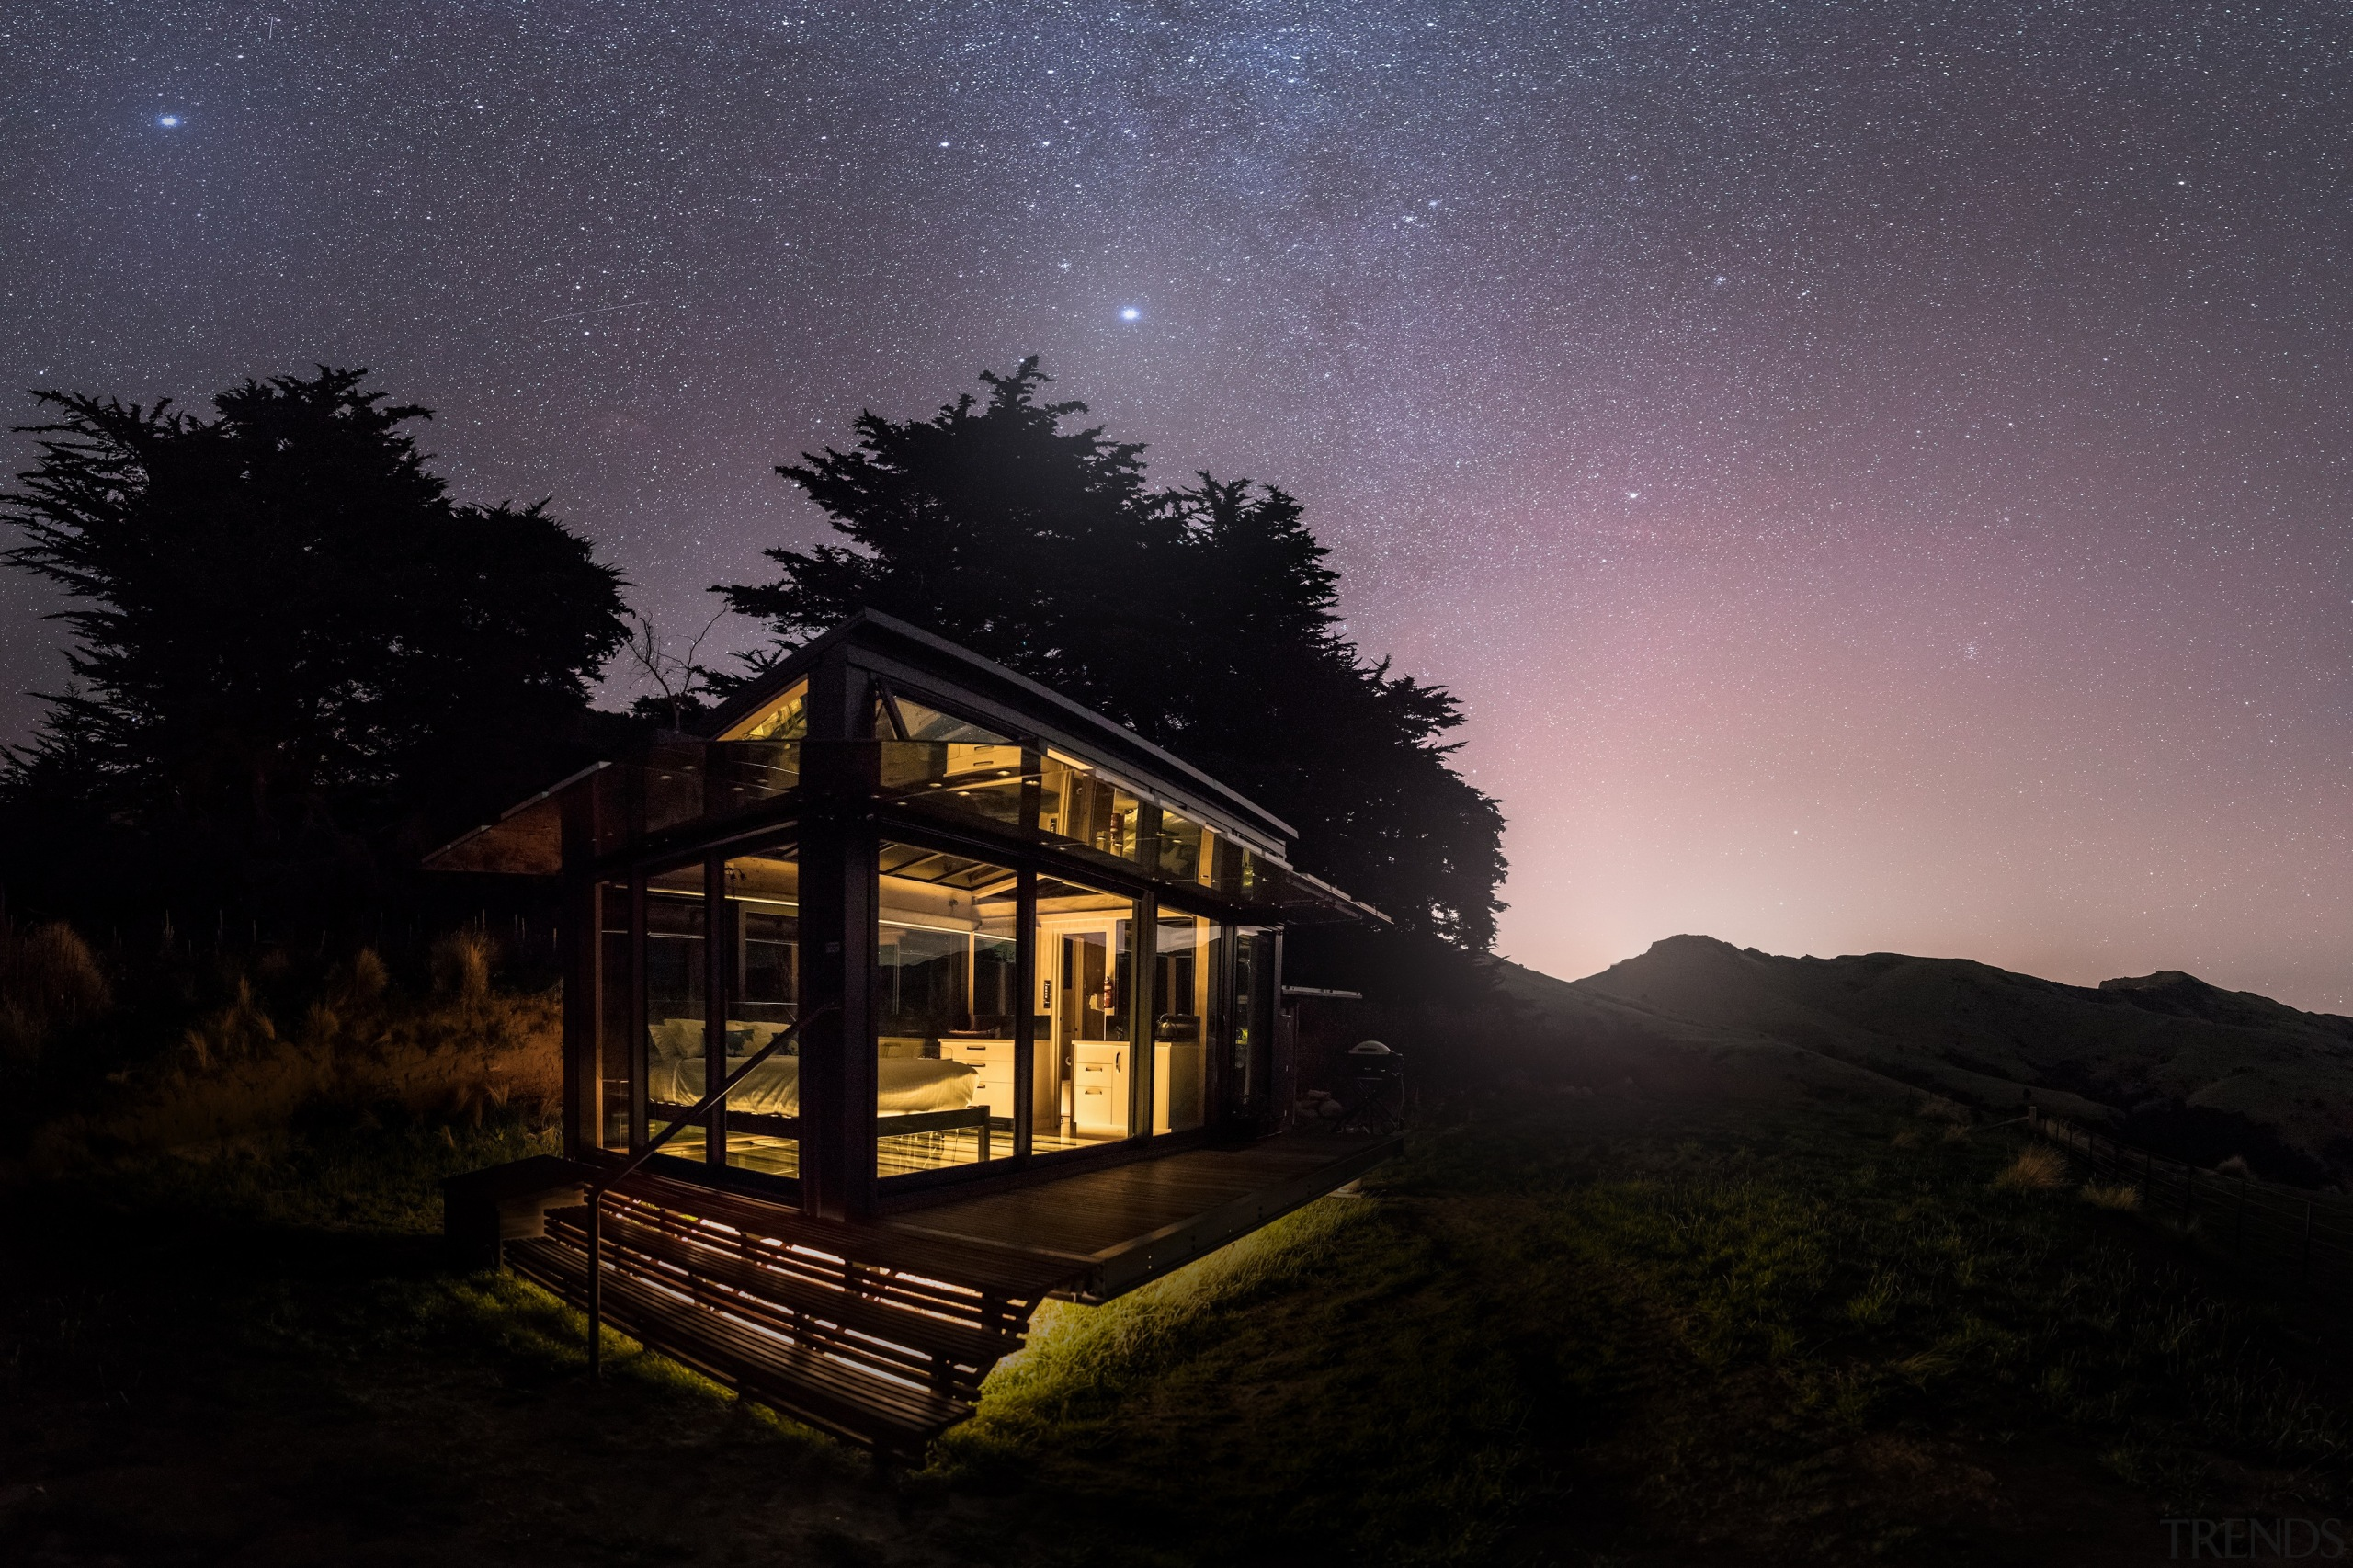 PurePod, New Zealand South Island, New Zealand - architecture, astronomical object, atmosphere, atmospheric phenomenon, building, cloud, cottage, darkness, home, house, hut, landscape, light, log cabin, midnight, moonlight, night, photography, sky, space, star, tree, black, gray